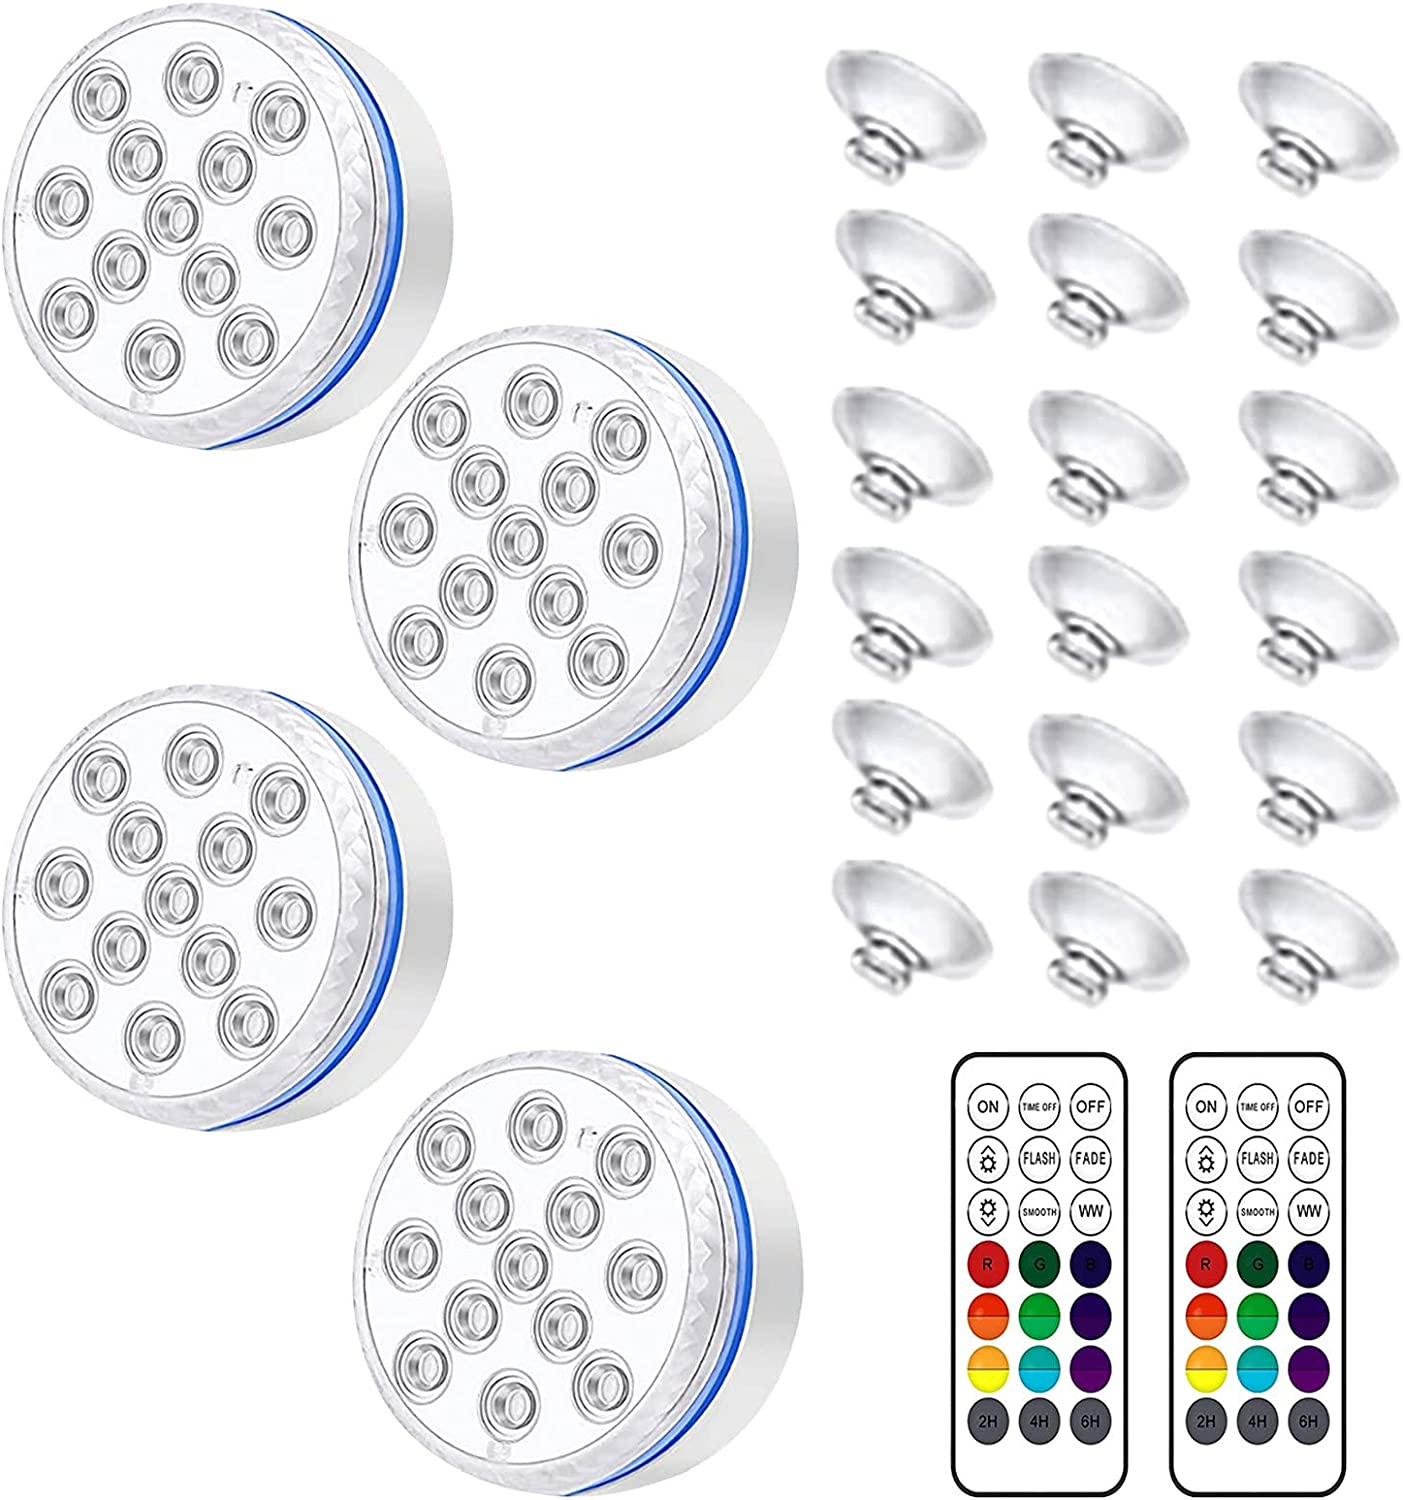 ChoZear Submersible Led Lights Colors Max 81% OFF Pond Popularity Underwater 16